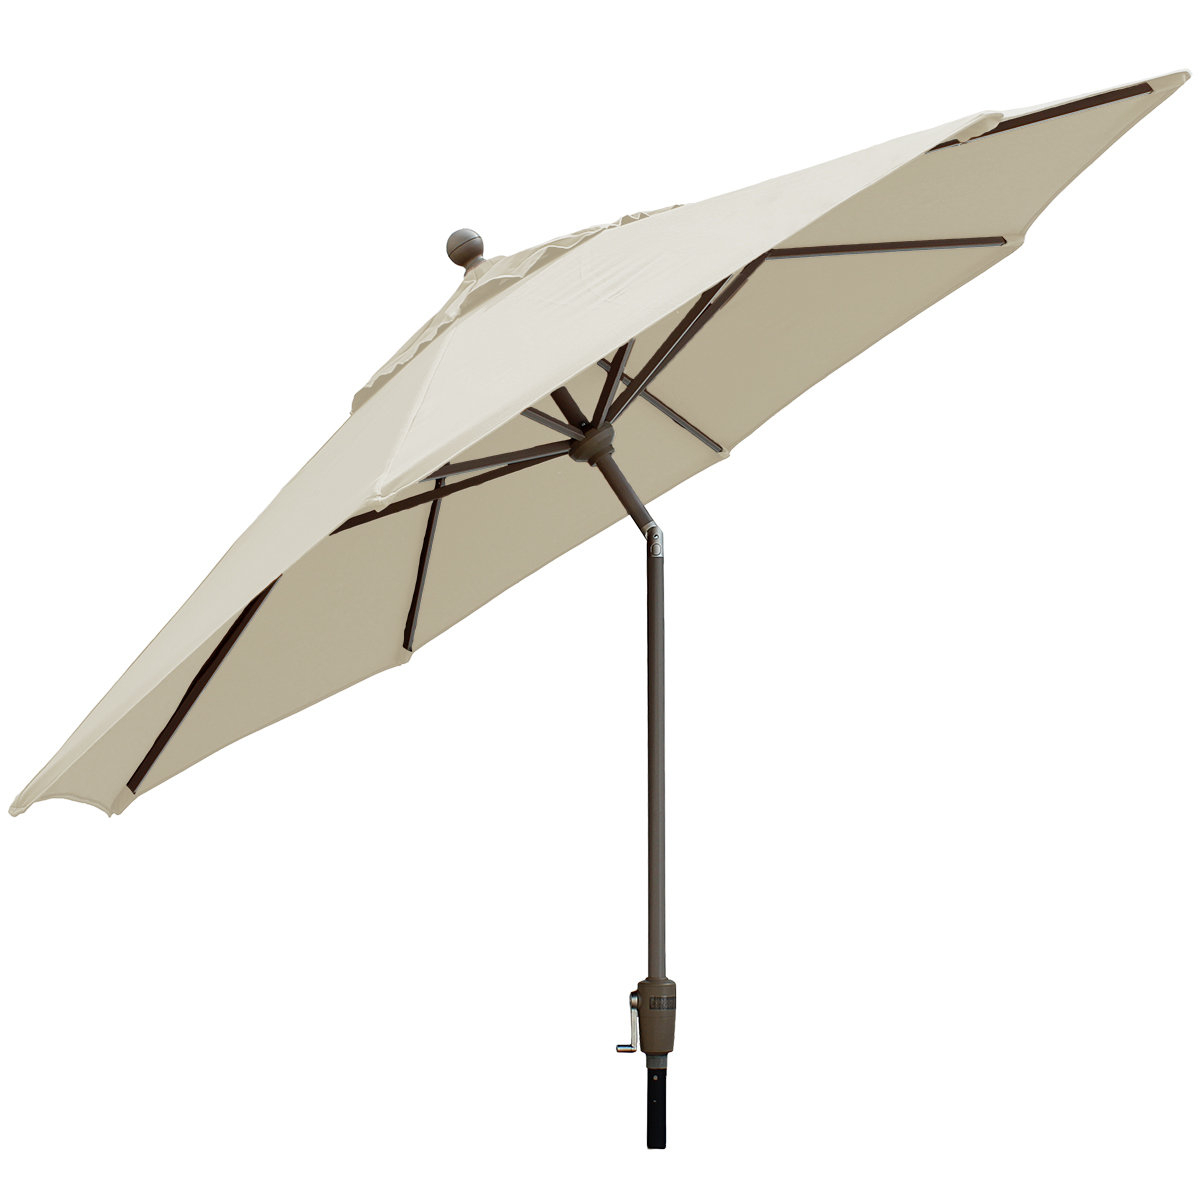 Mucci Madilyn Market Sunbrella Umbrellas Pertaining To Widely Used Crowland 9' Market Sunbrella Umbrella (Gallery 17 of 20)